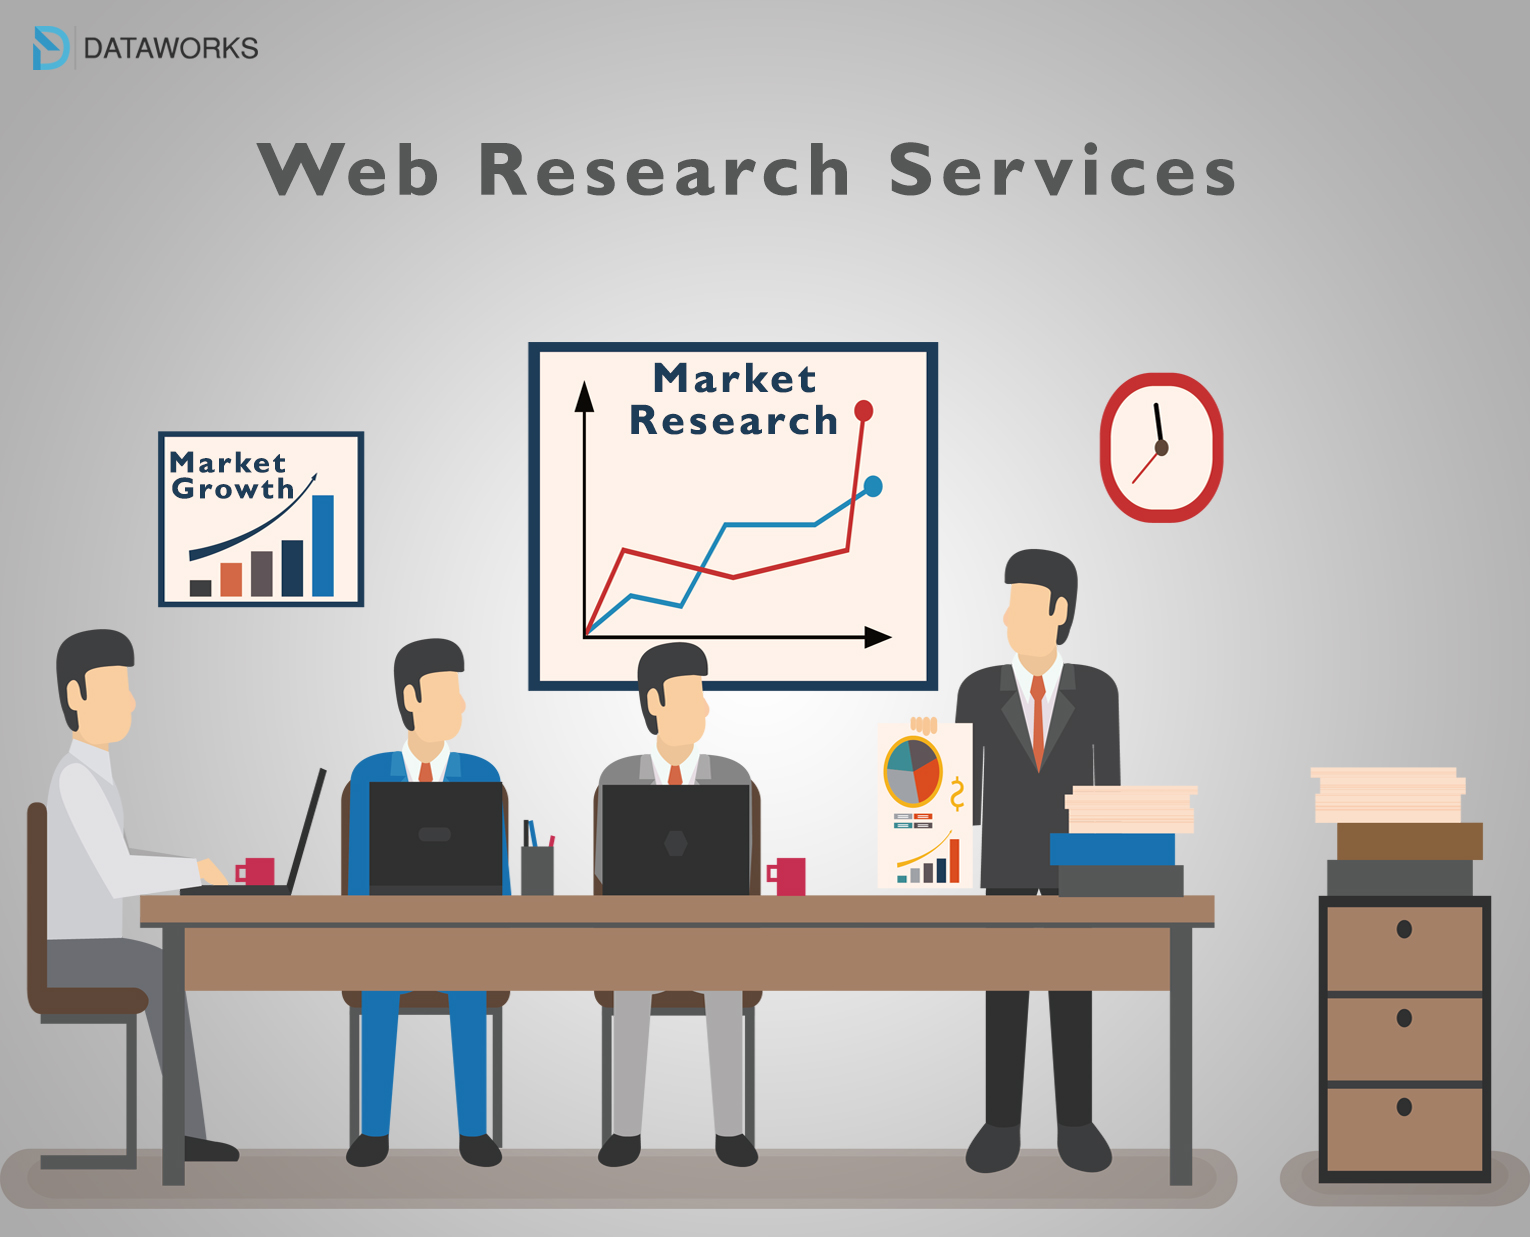 Outsourcing Web Research Services for Market and Business Intelligence